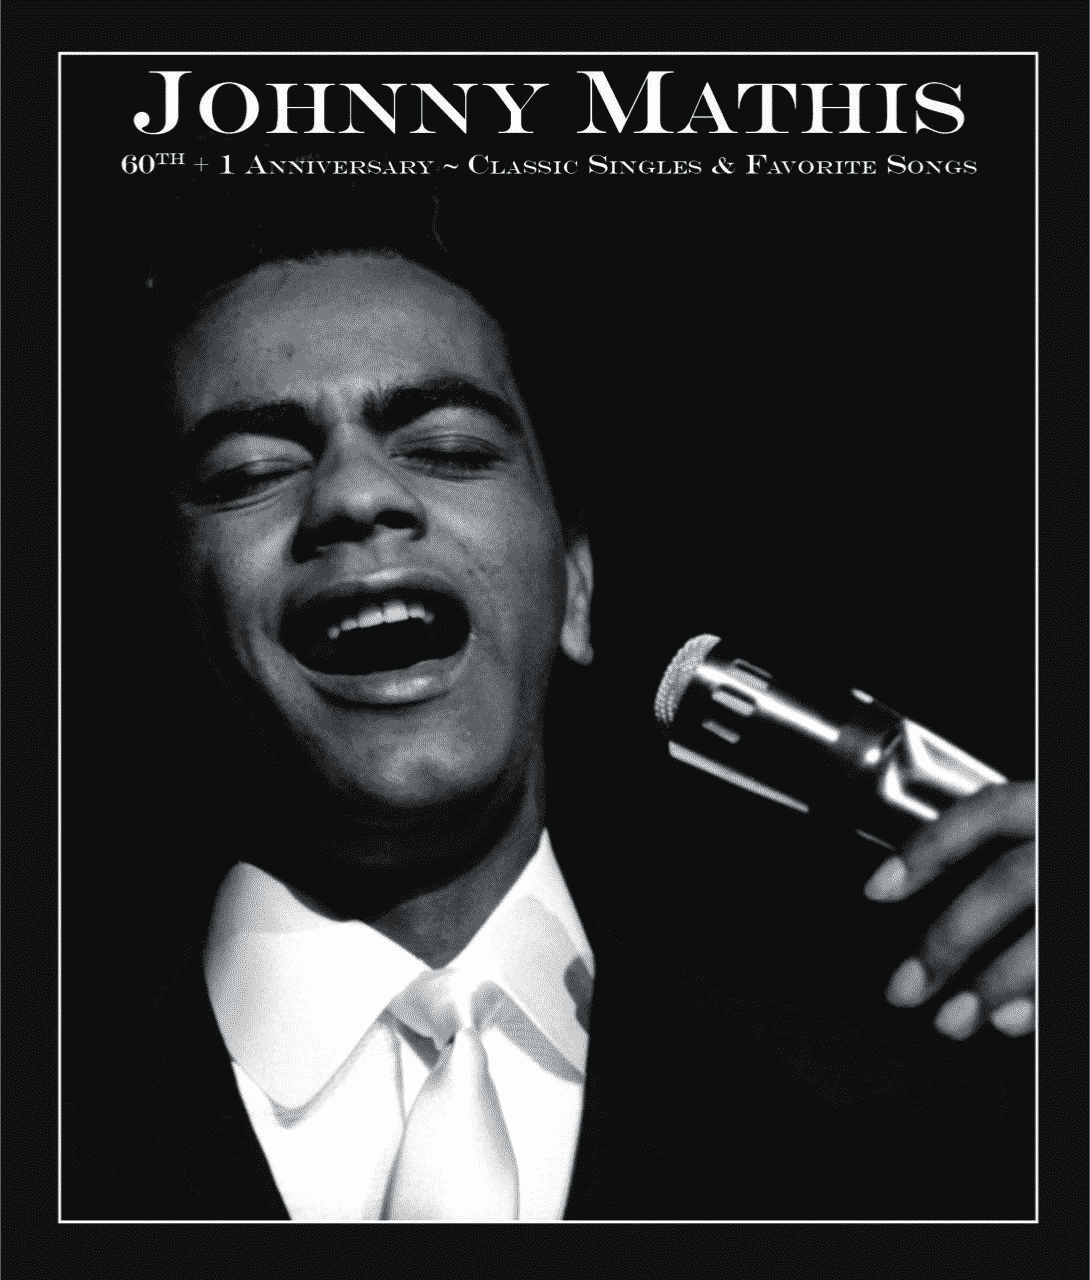 BREAKING! A Song Worth Singing: Johnny Mathis Special Airs This ...